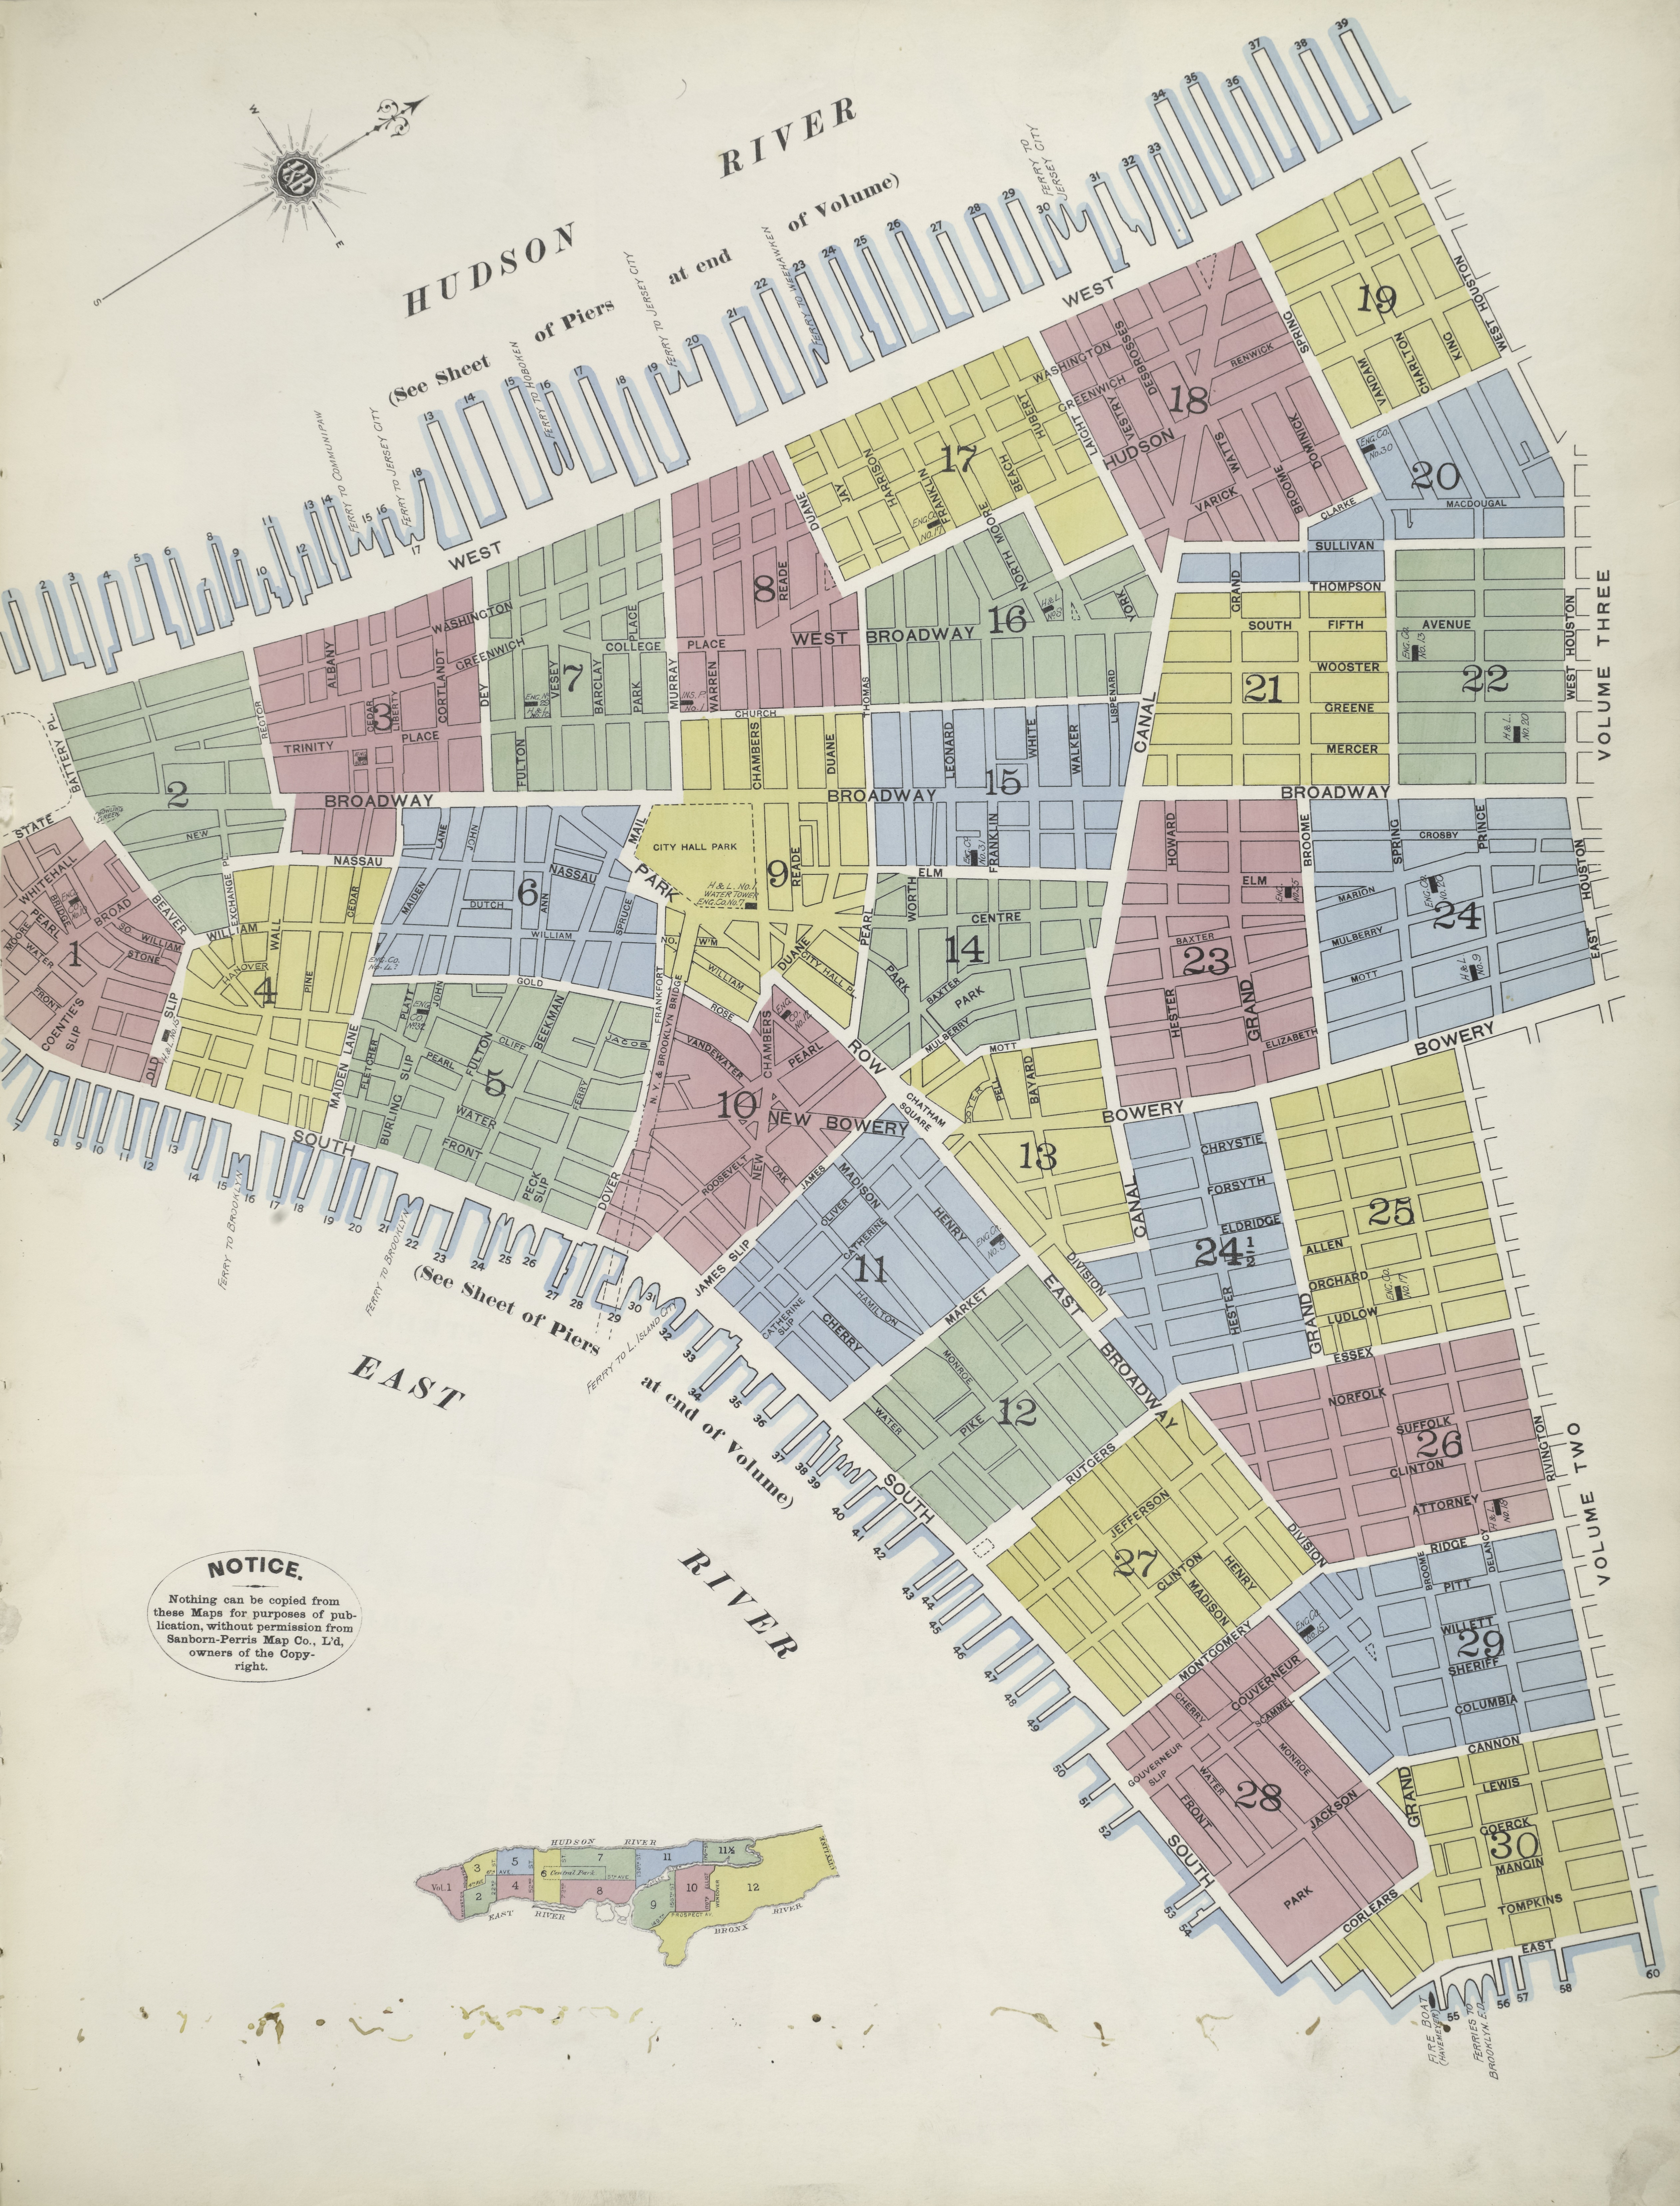 File:Sanborn Manhattan V. 1 volume key publ. 1894.jpg ... on 9gag map, language map, the republic of molossia map, freedom house map, encarta map, fusion tables map, global security map, streetview map, tanzania tourism map, 1964 electoral college map, hopkins medicine map, it network map, pirate bay map, bible places map, kansas cemeteries map, spaceport america map, hispanic latino map, the principality of sealand map, smithsonian institute map, icao airport codes map,